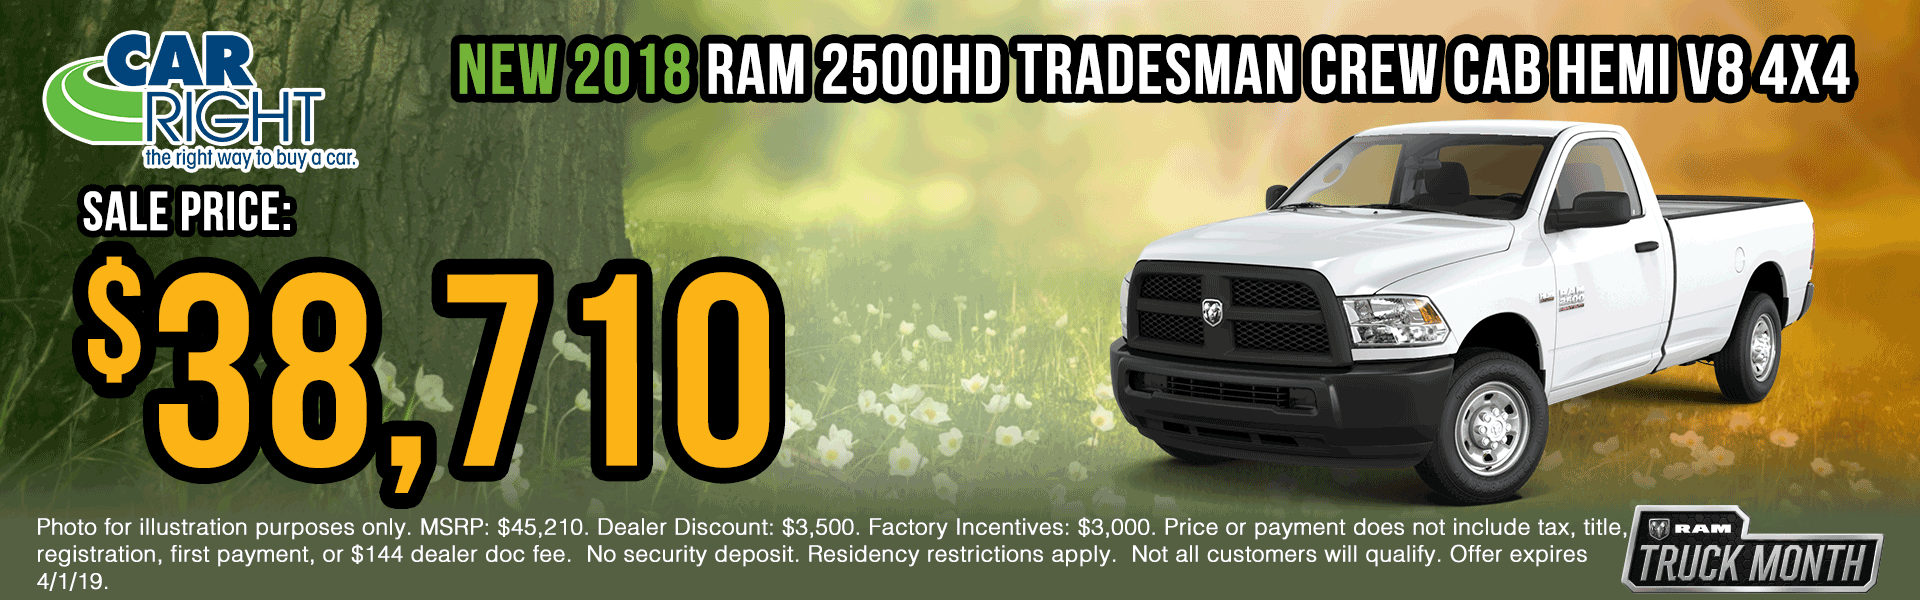 B2657-2018-ram-2500-tradesman-crew-cab Spring sales event ram truck month jeep specials Chrysler specials ram specials dodge specials mopar specials new vehicle specials carright specials moon twp